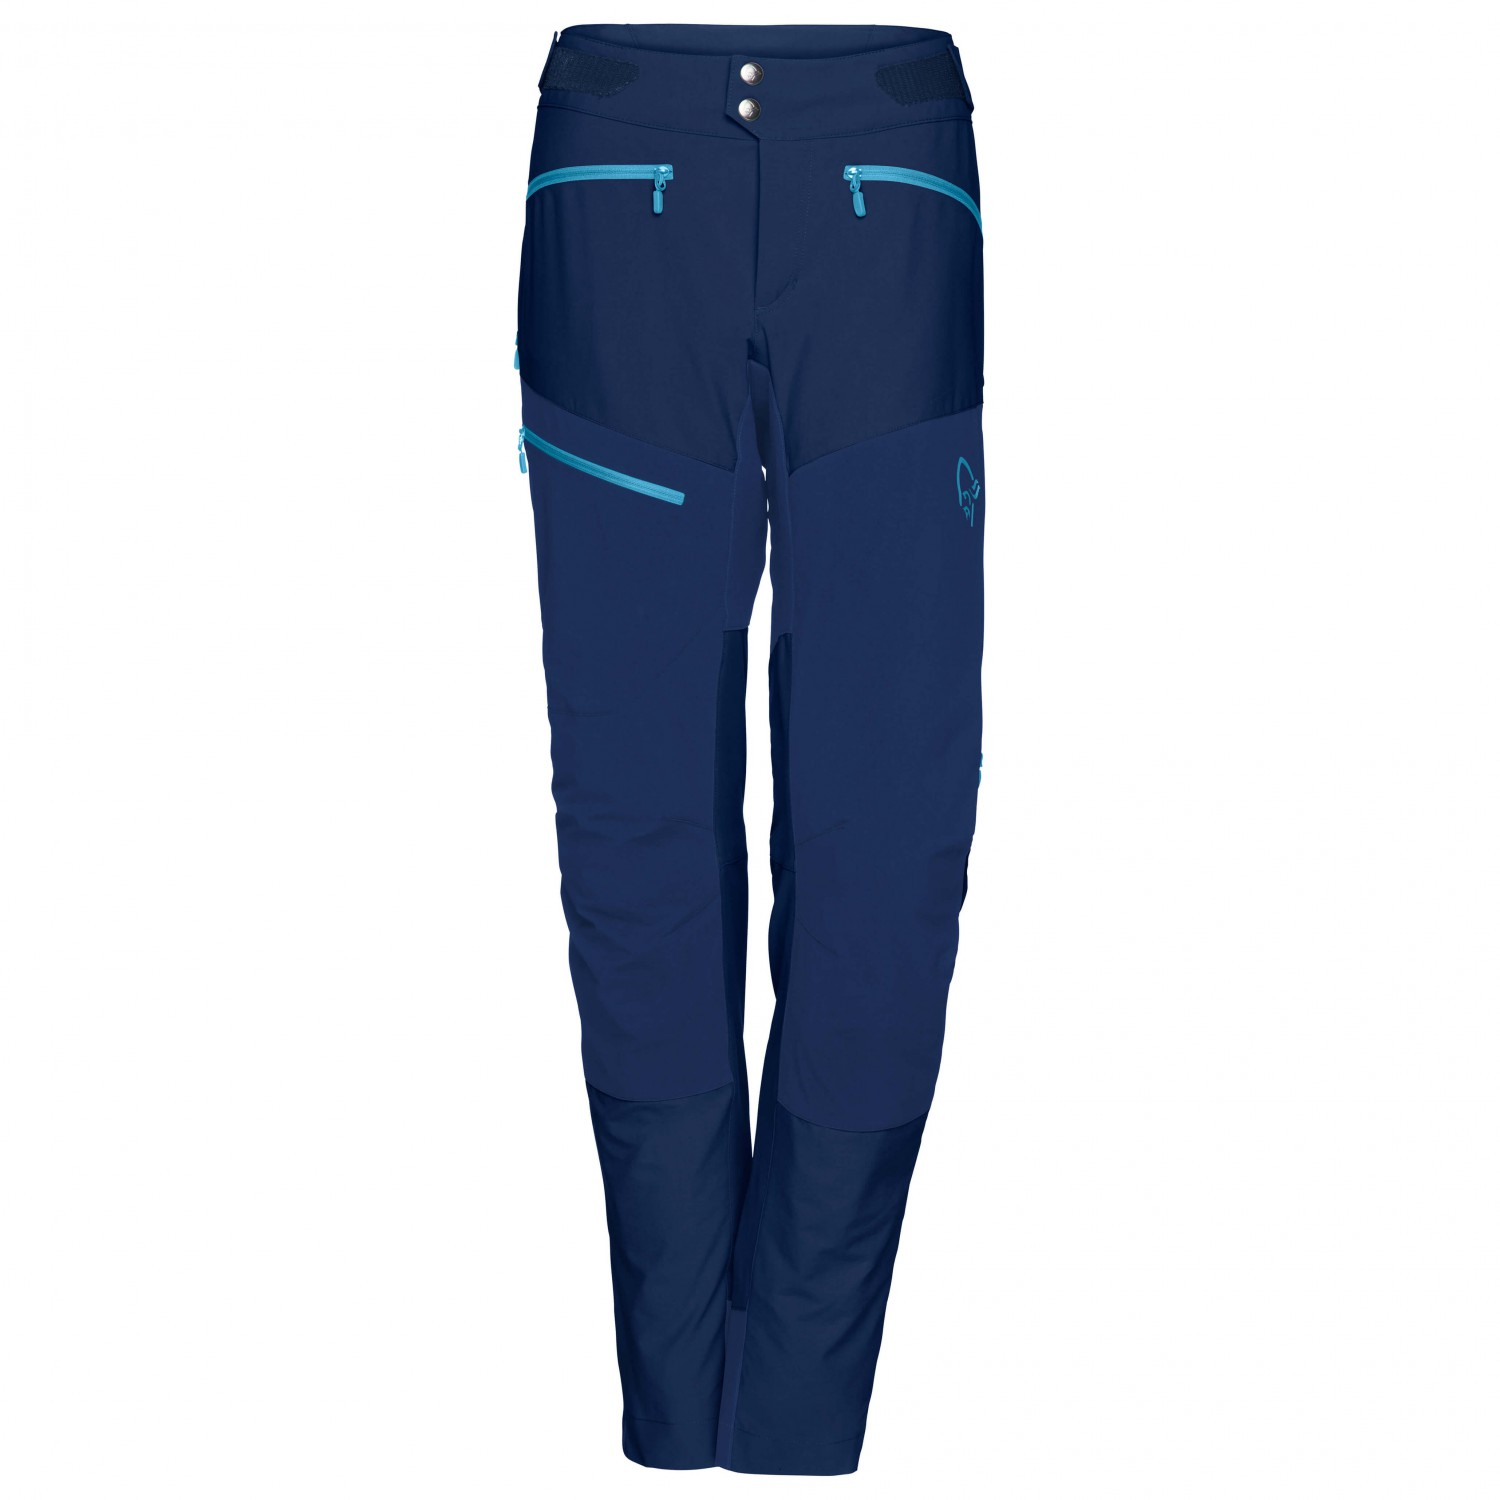 7e813d85 Norrøna Fjørå Flex1 Pants - Cycling Bottoms Women's | Free UK ...